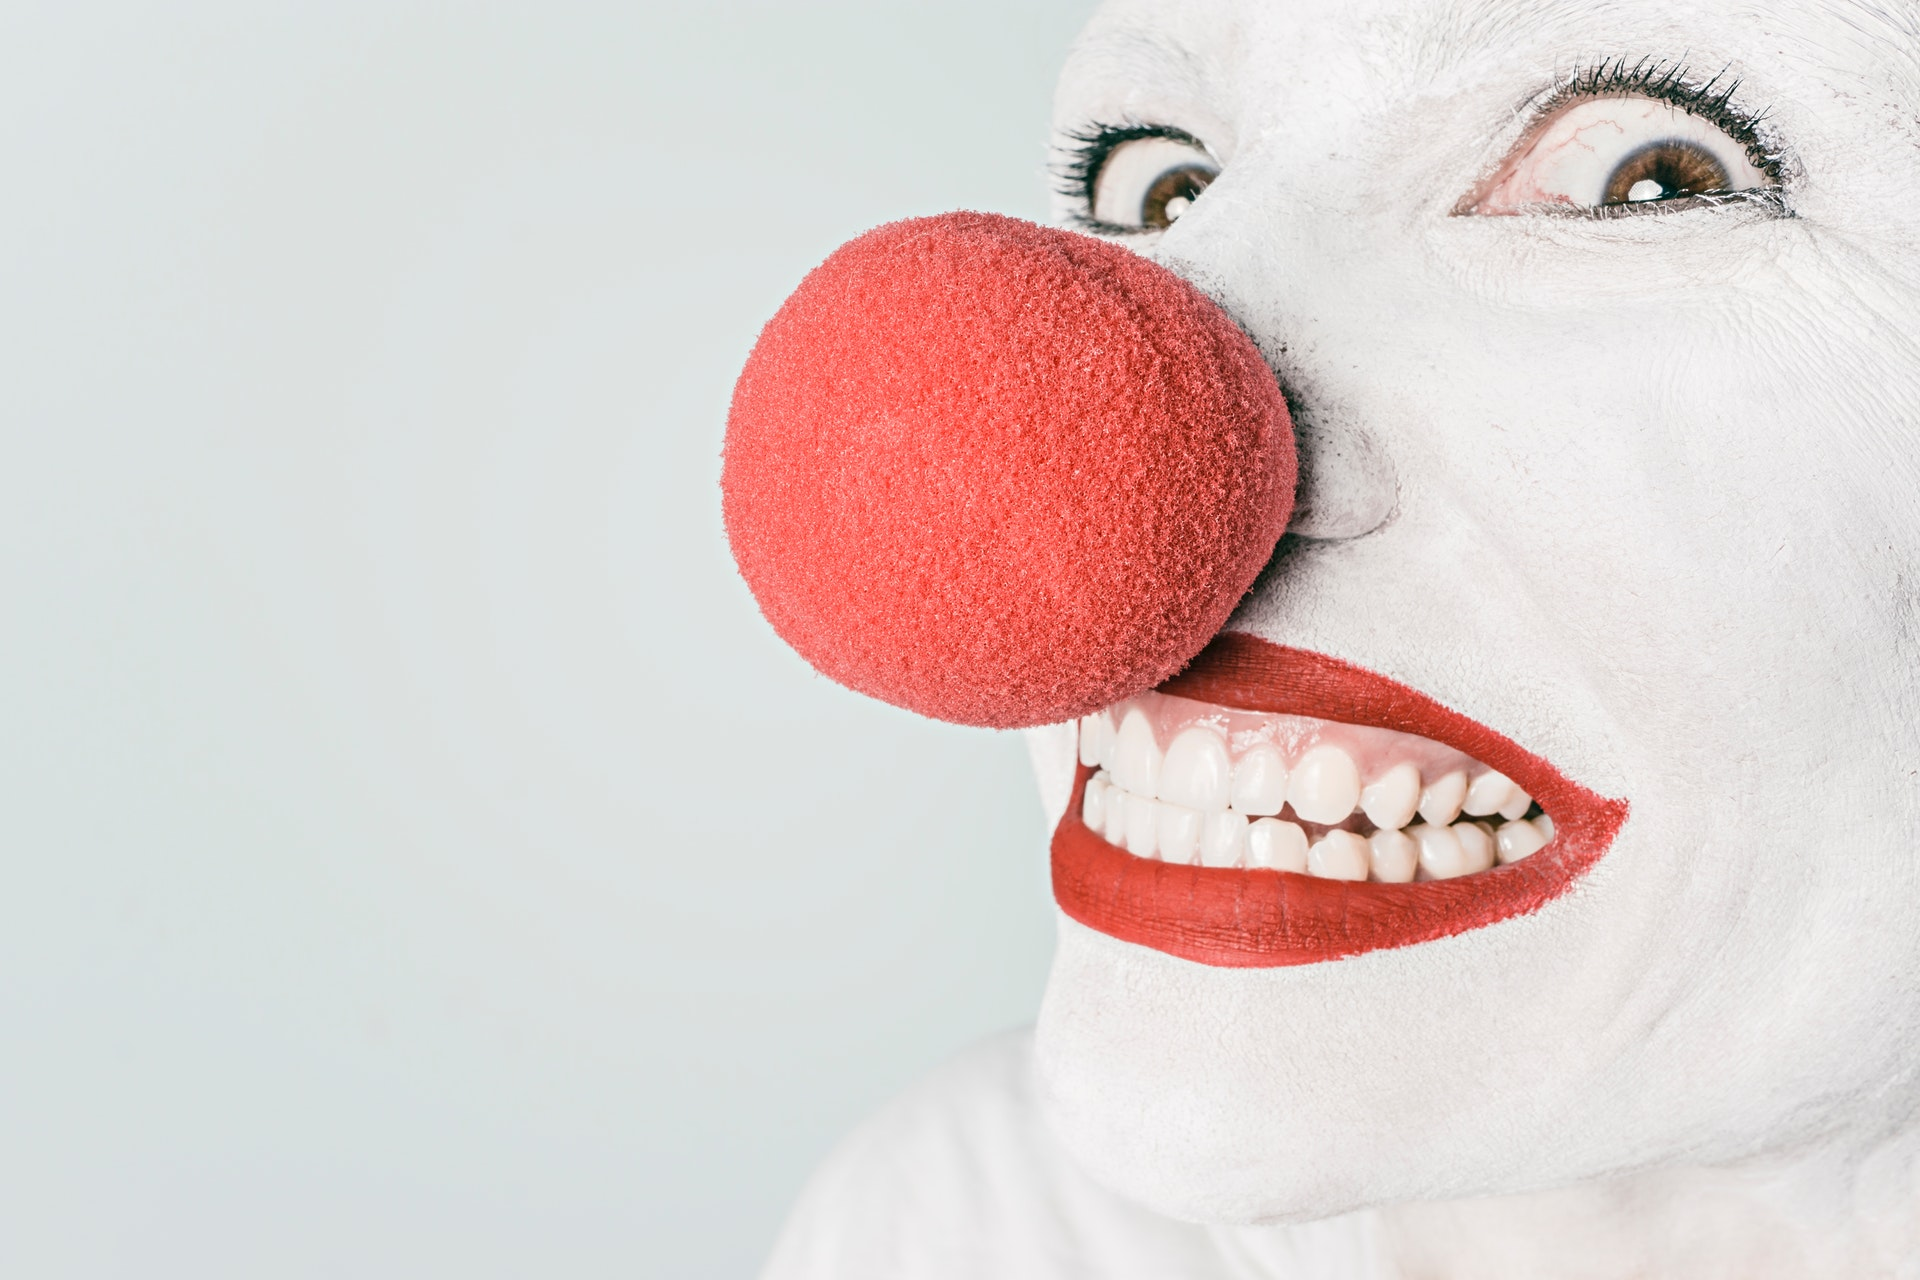 clown with an insane smile